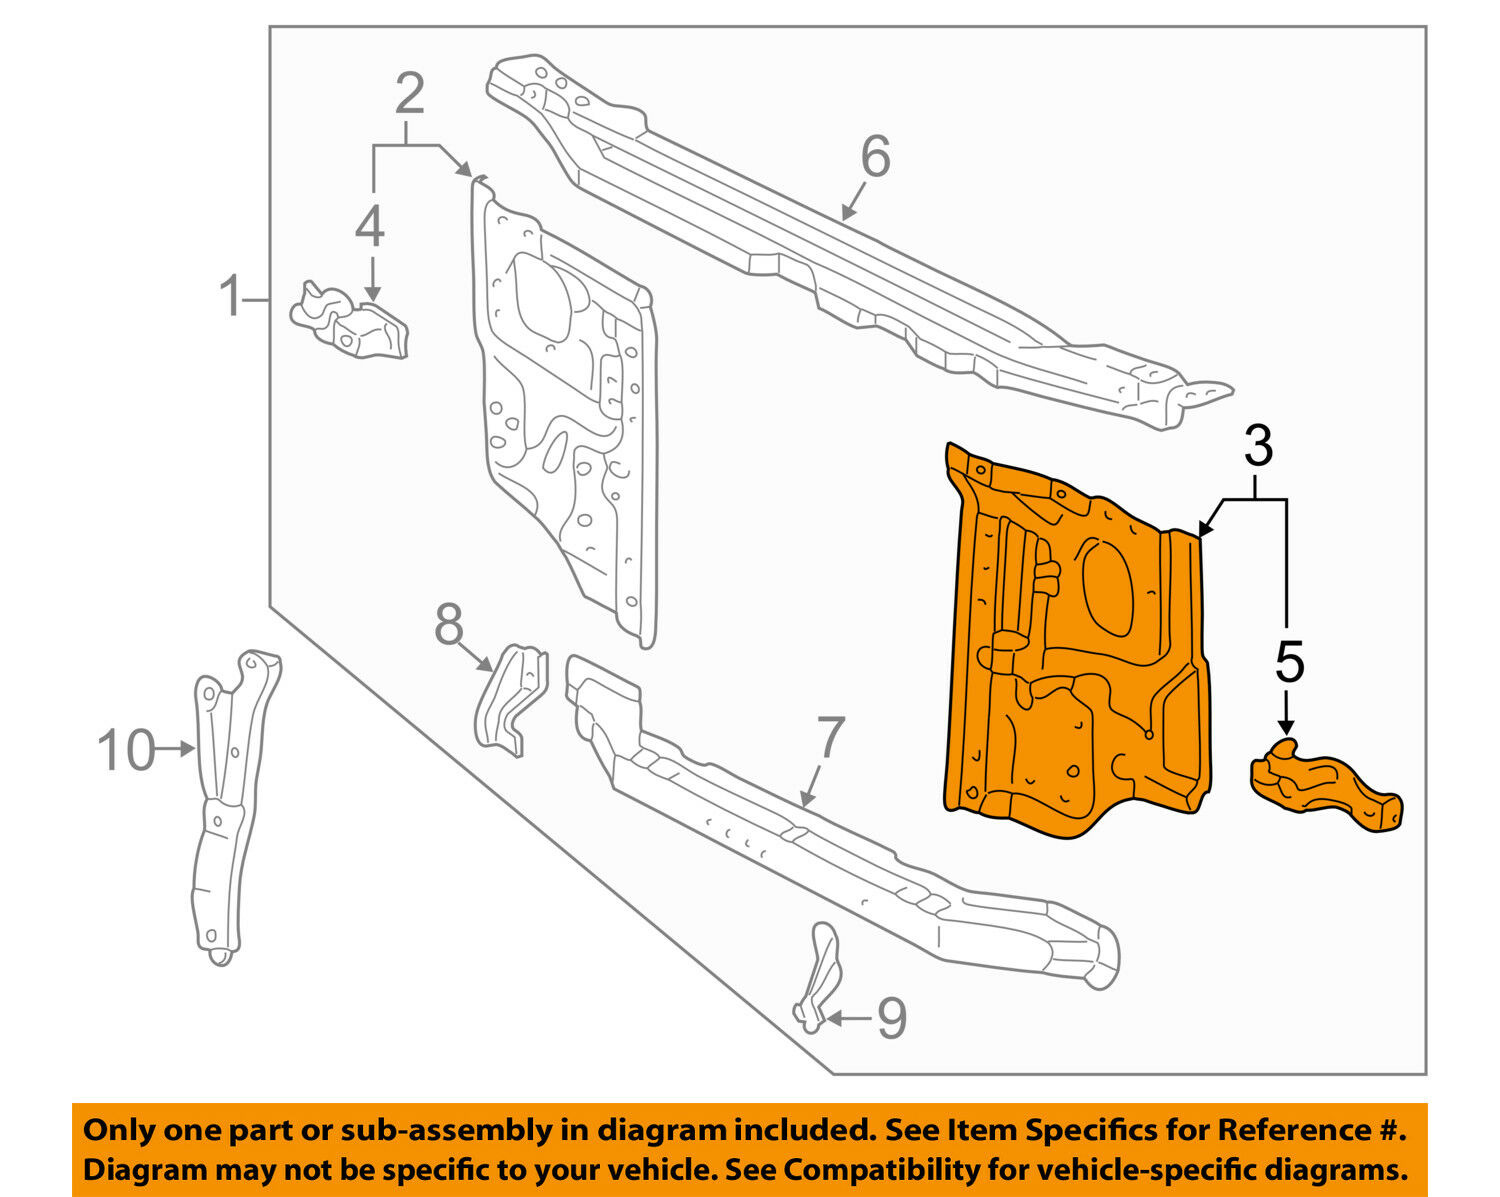 Toyota Tacoma Cooling System Diagram Kia Sorento Oem Radiator Support Side Panel Left Of Only Available 1500x1197